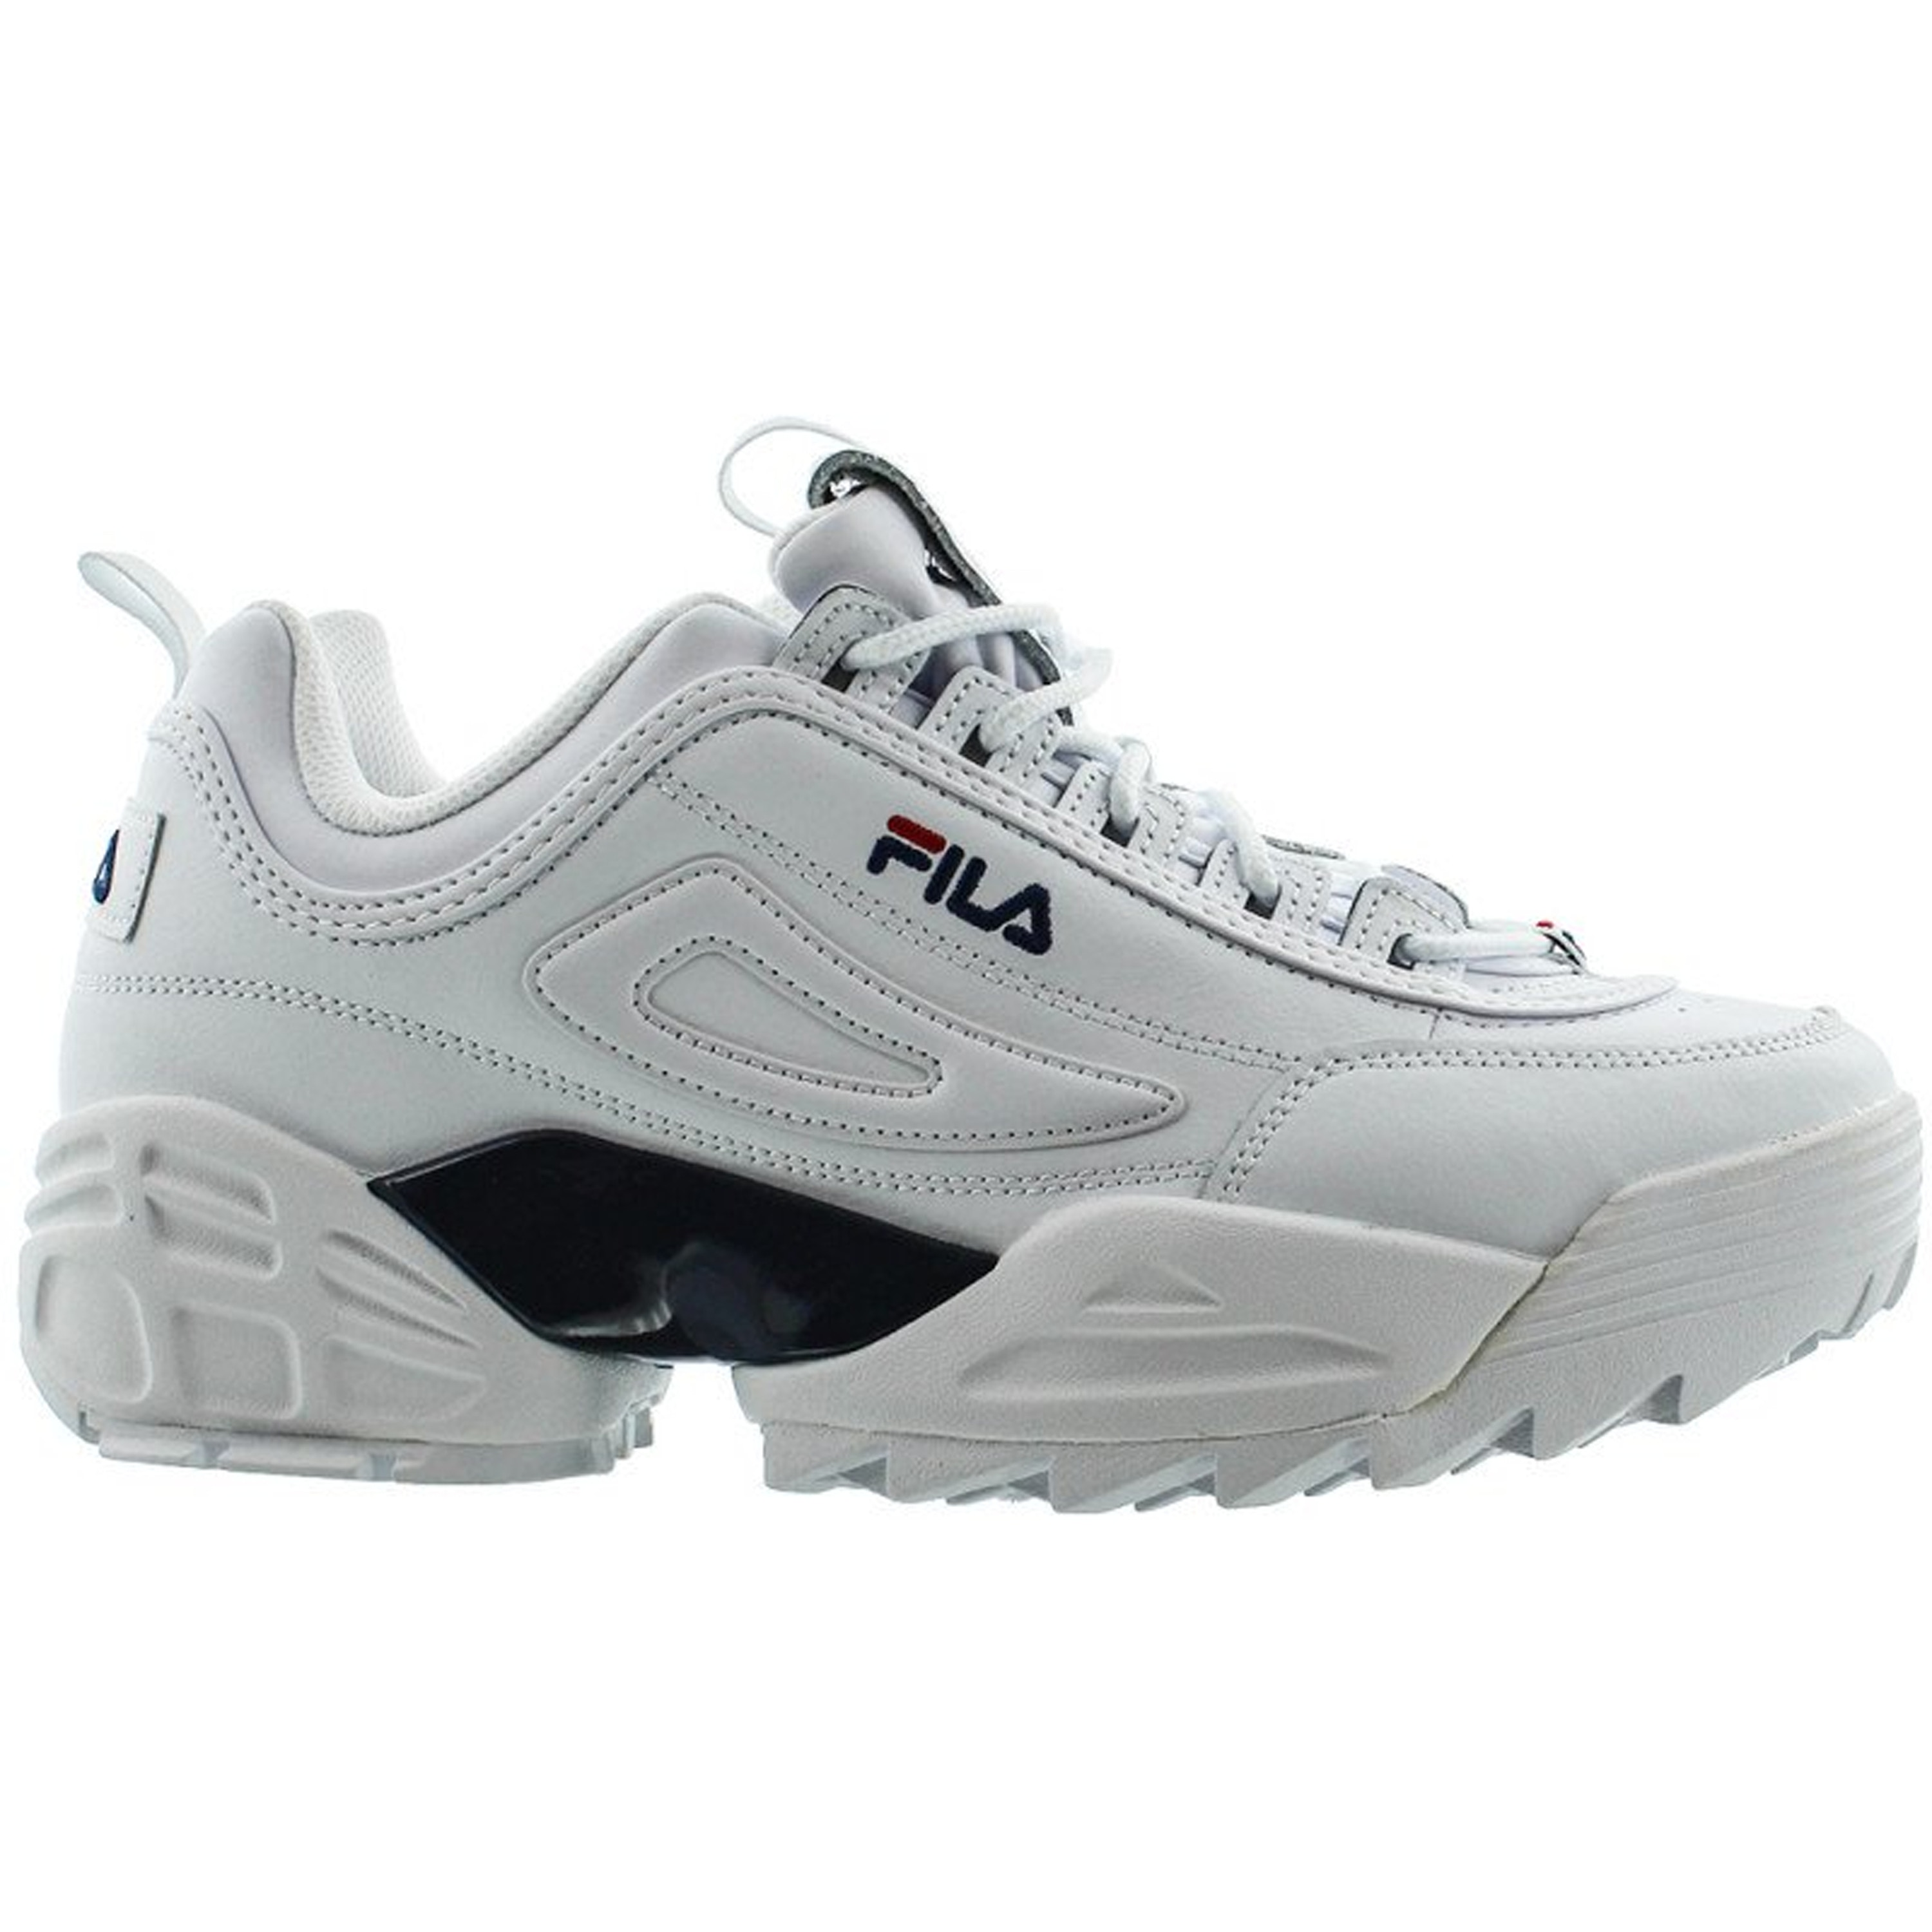 Fila Disruptor 2 Lab White (1FM00705-125)